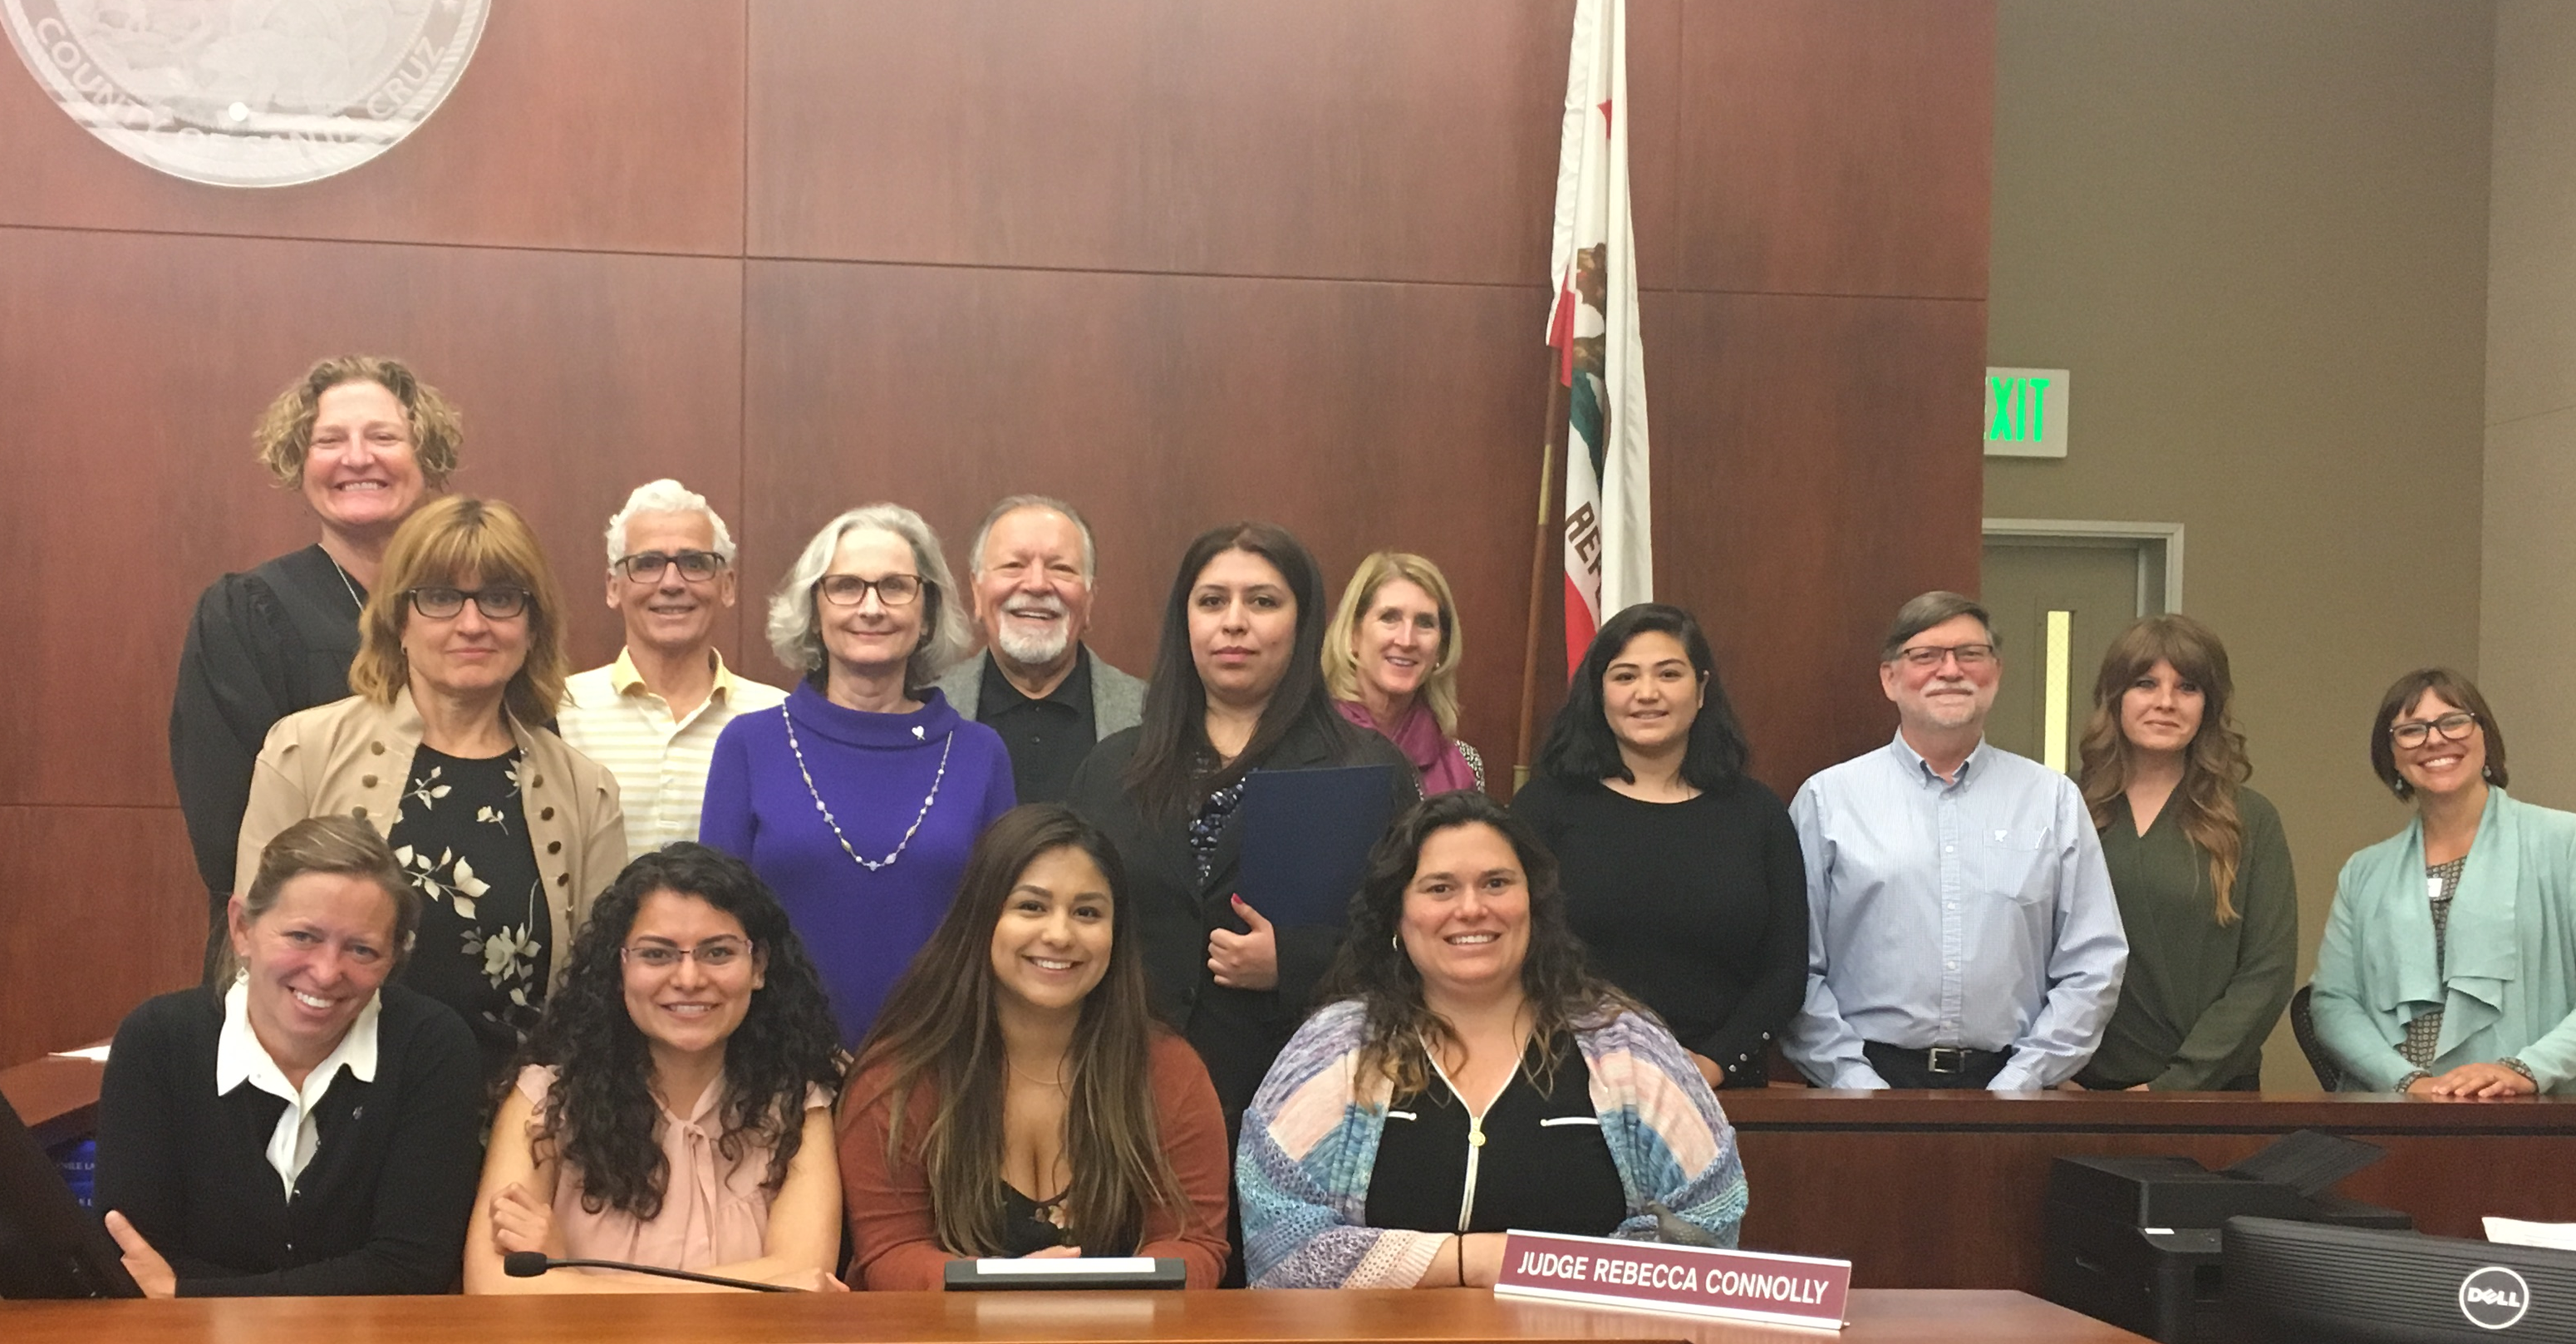 Congratulations to our newest class of Court Appointed Special Advocates!